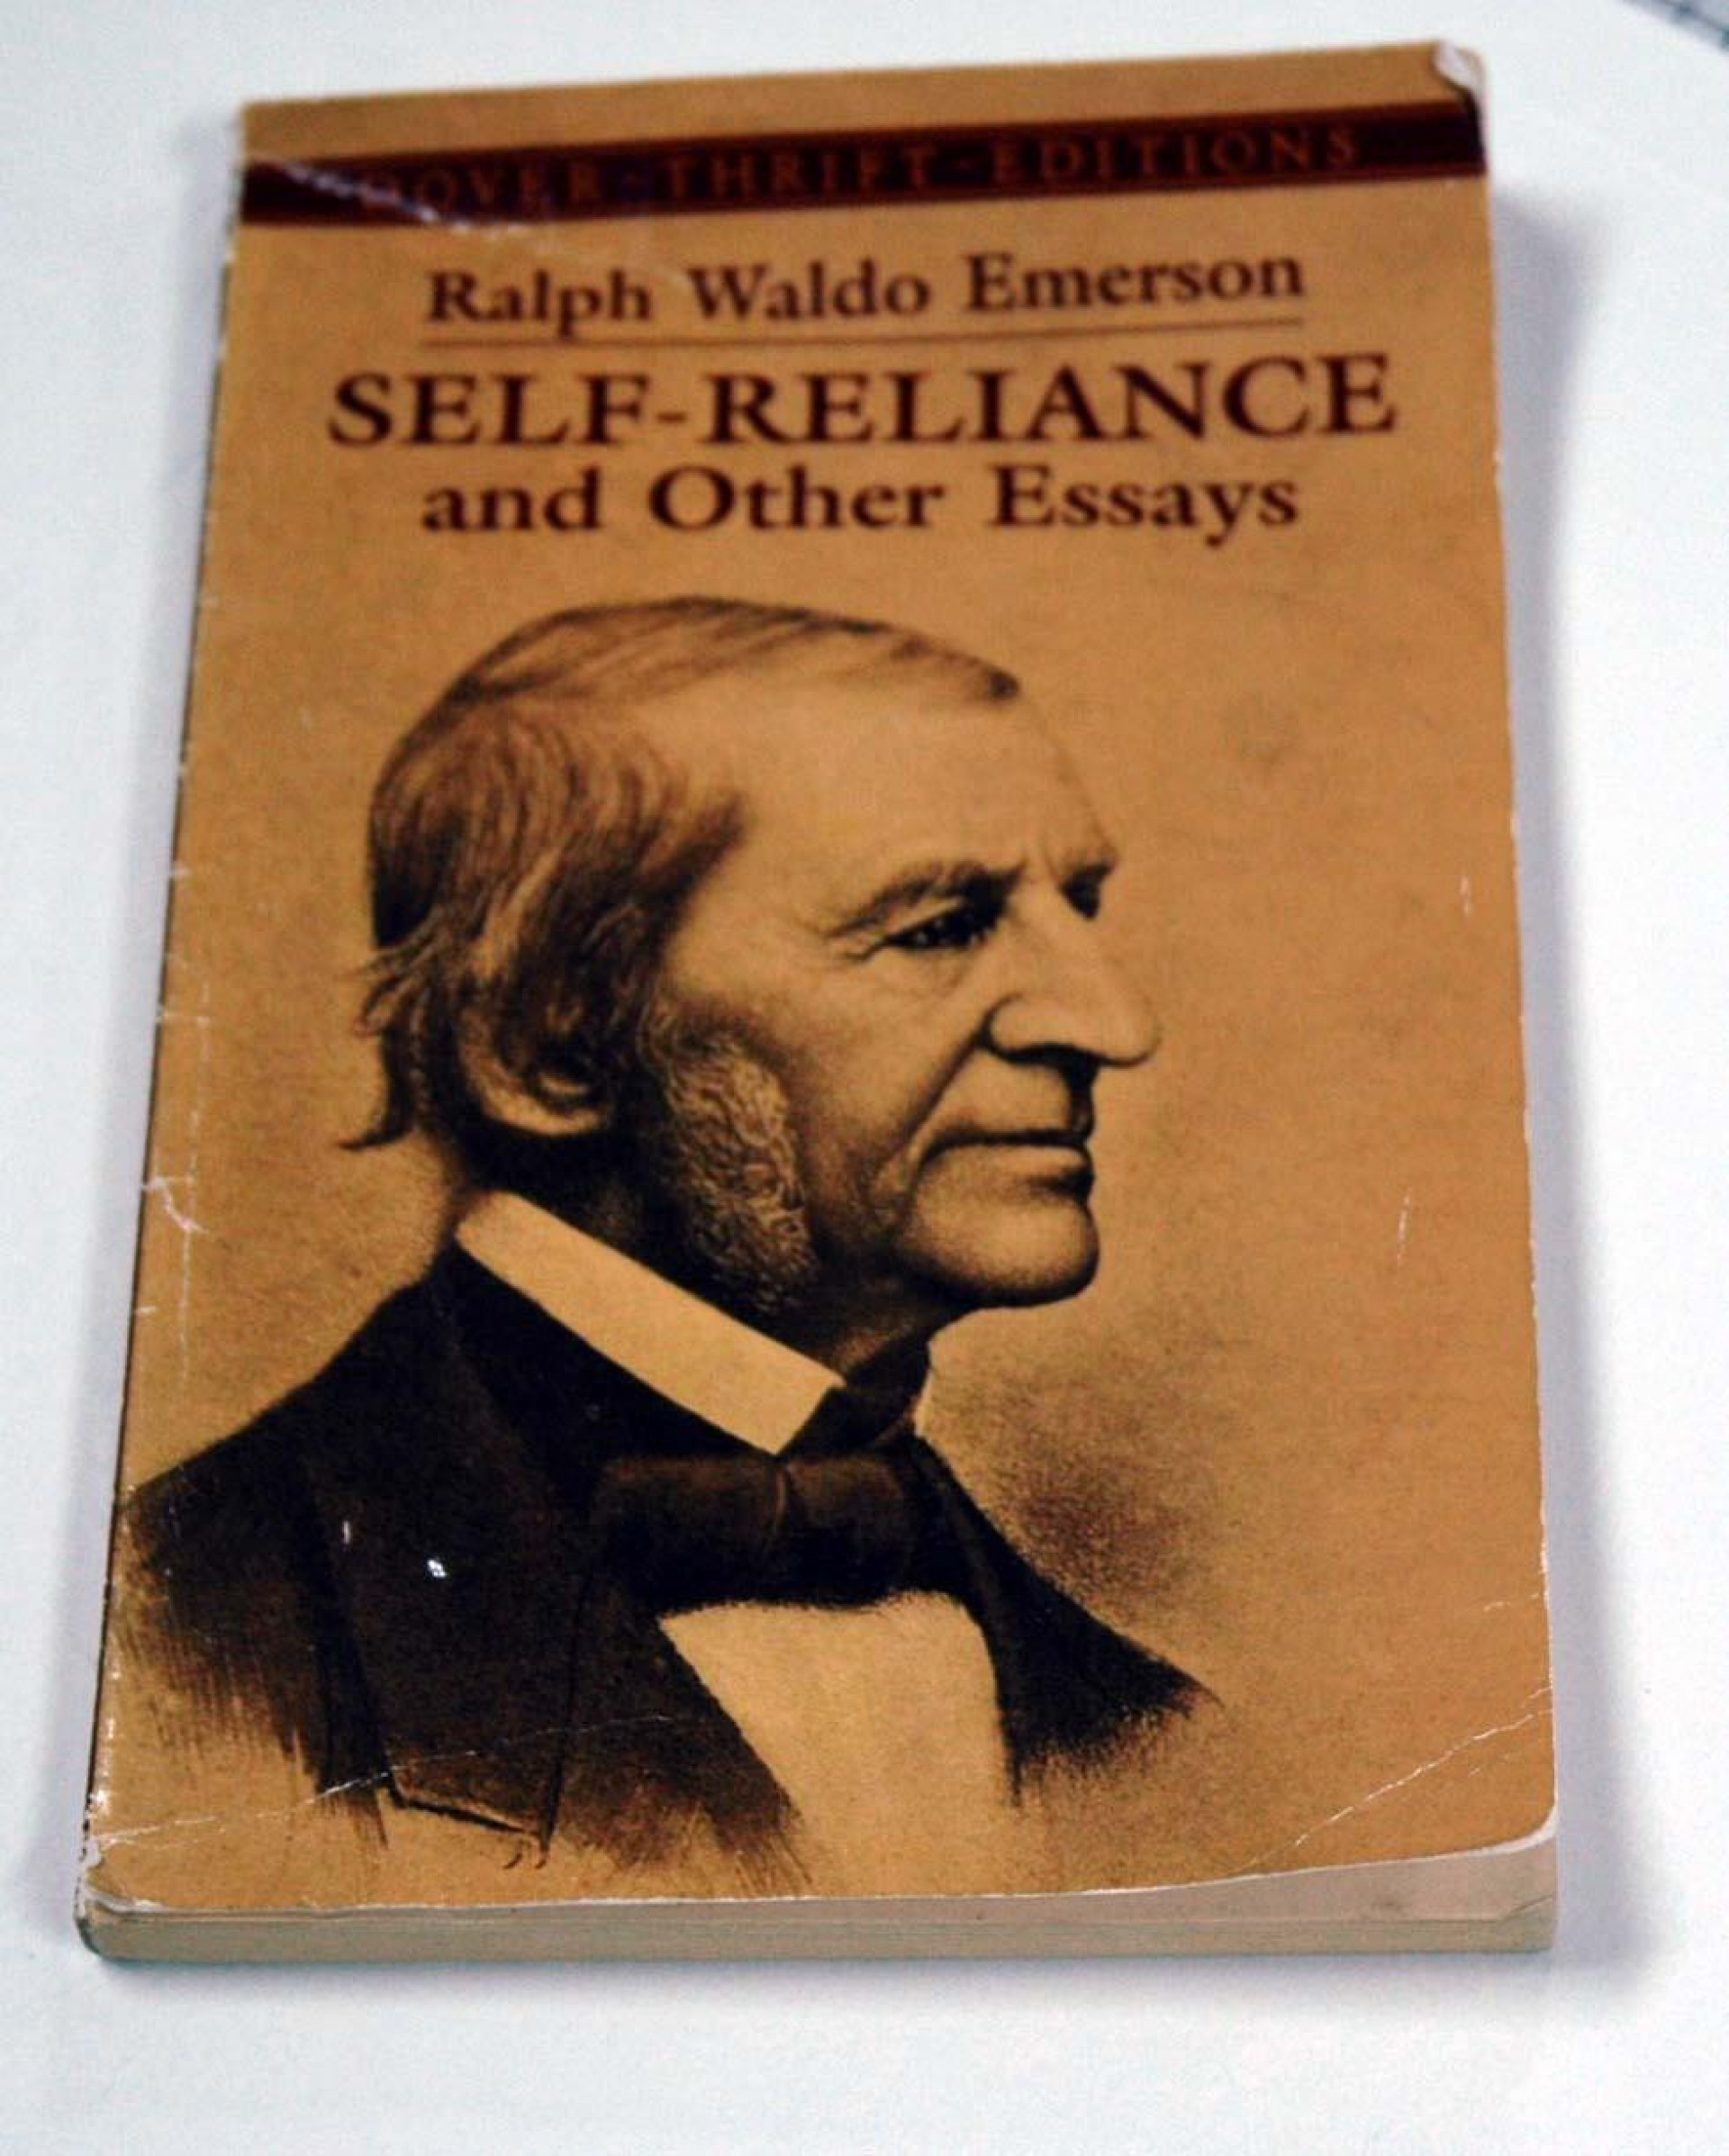 002 Self Reliance And Other Essays Essay Formidable Ekşi Self-reliance (dover Thrift Editions) Pdf Epub 1920